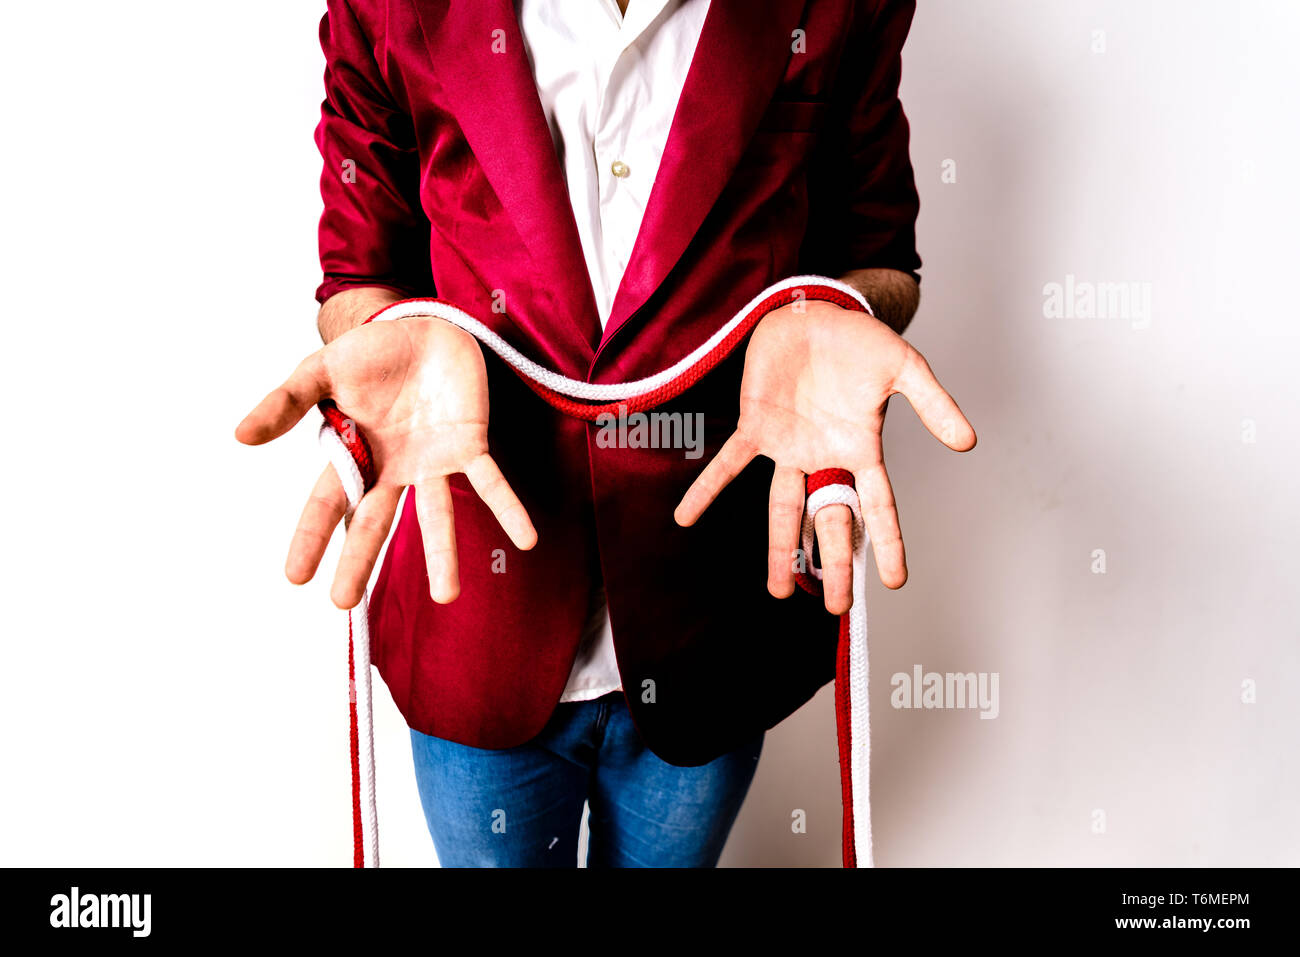 Magician hands handling ropes and bandanas to do magic tricks, isolated on white. - Stock Image